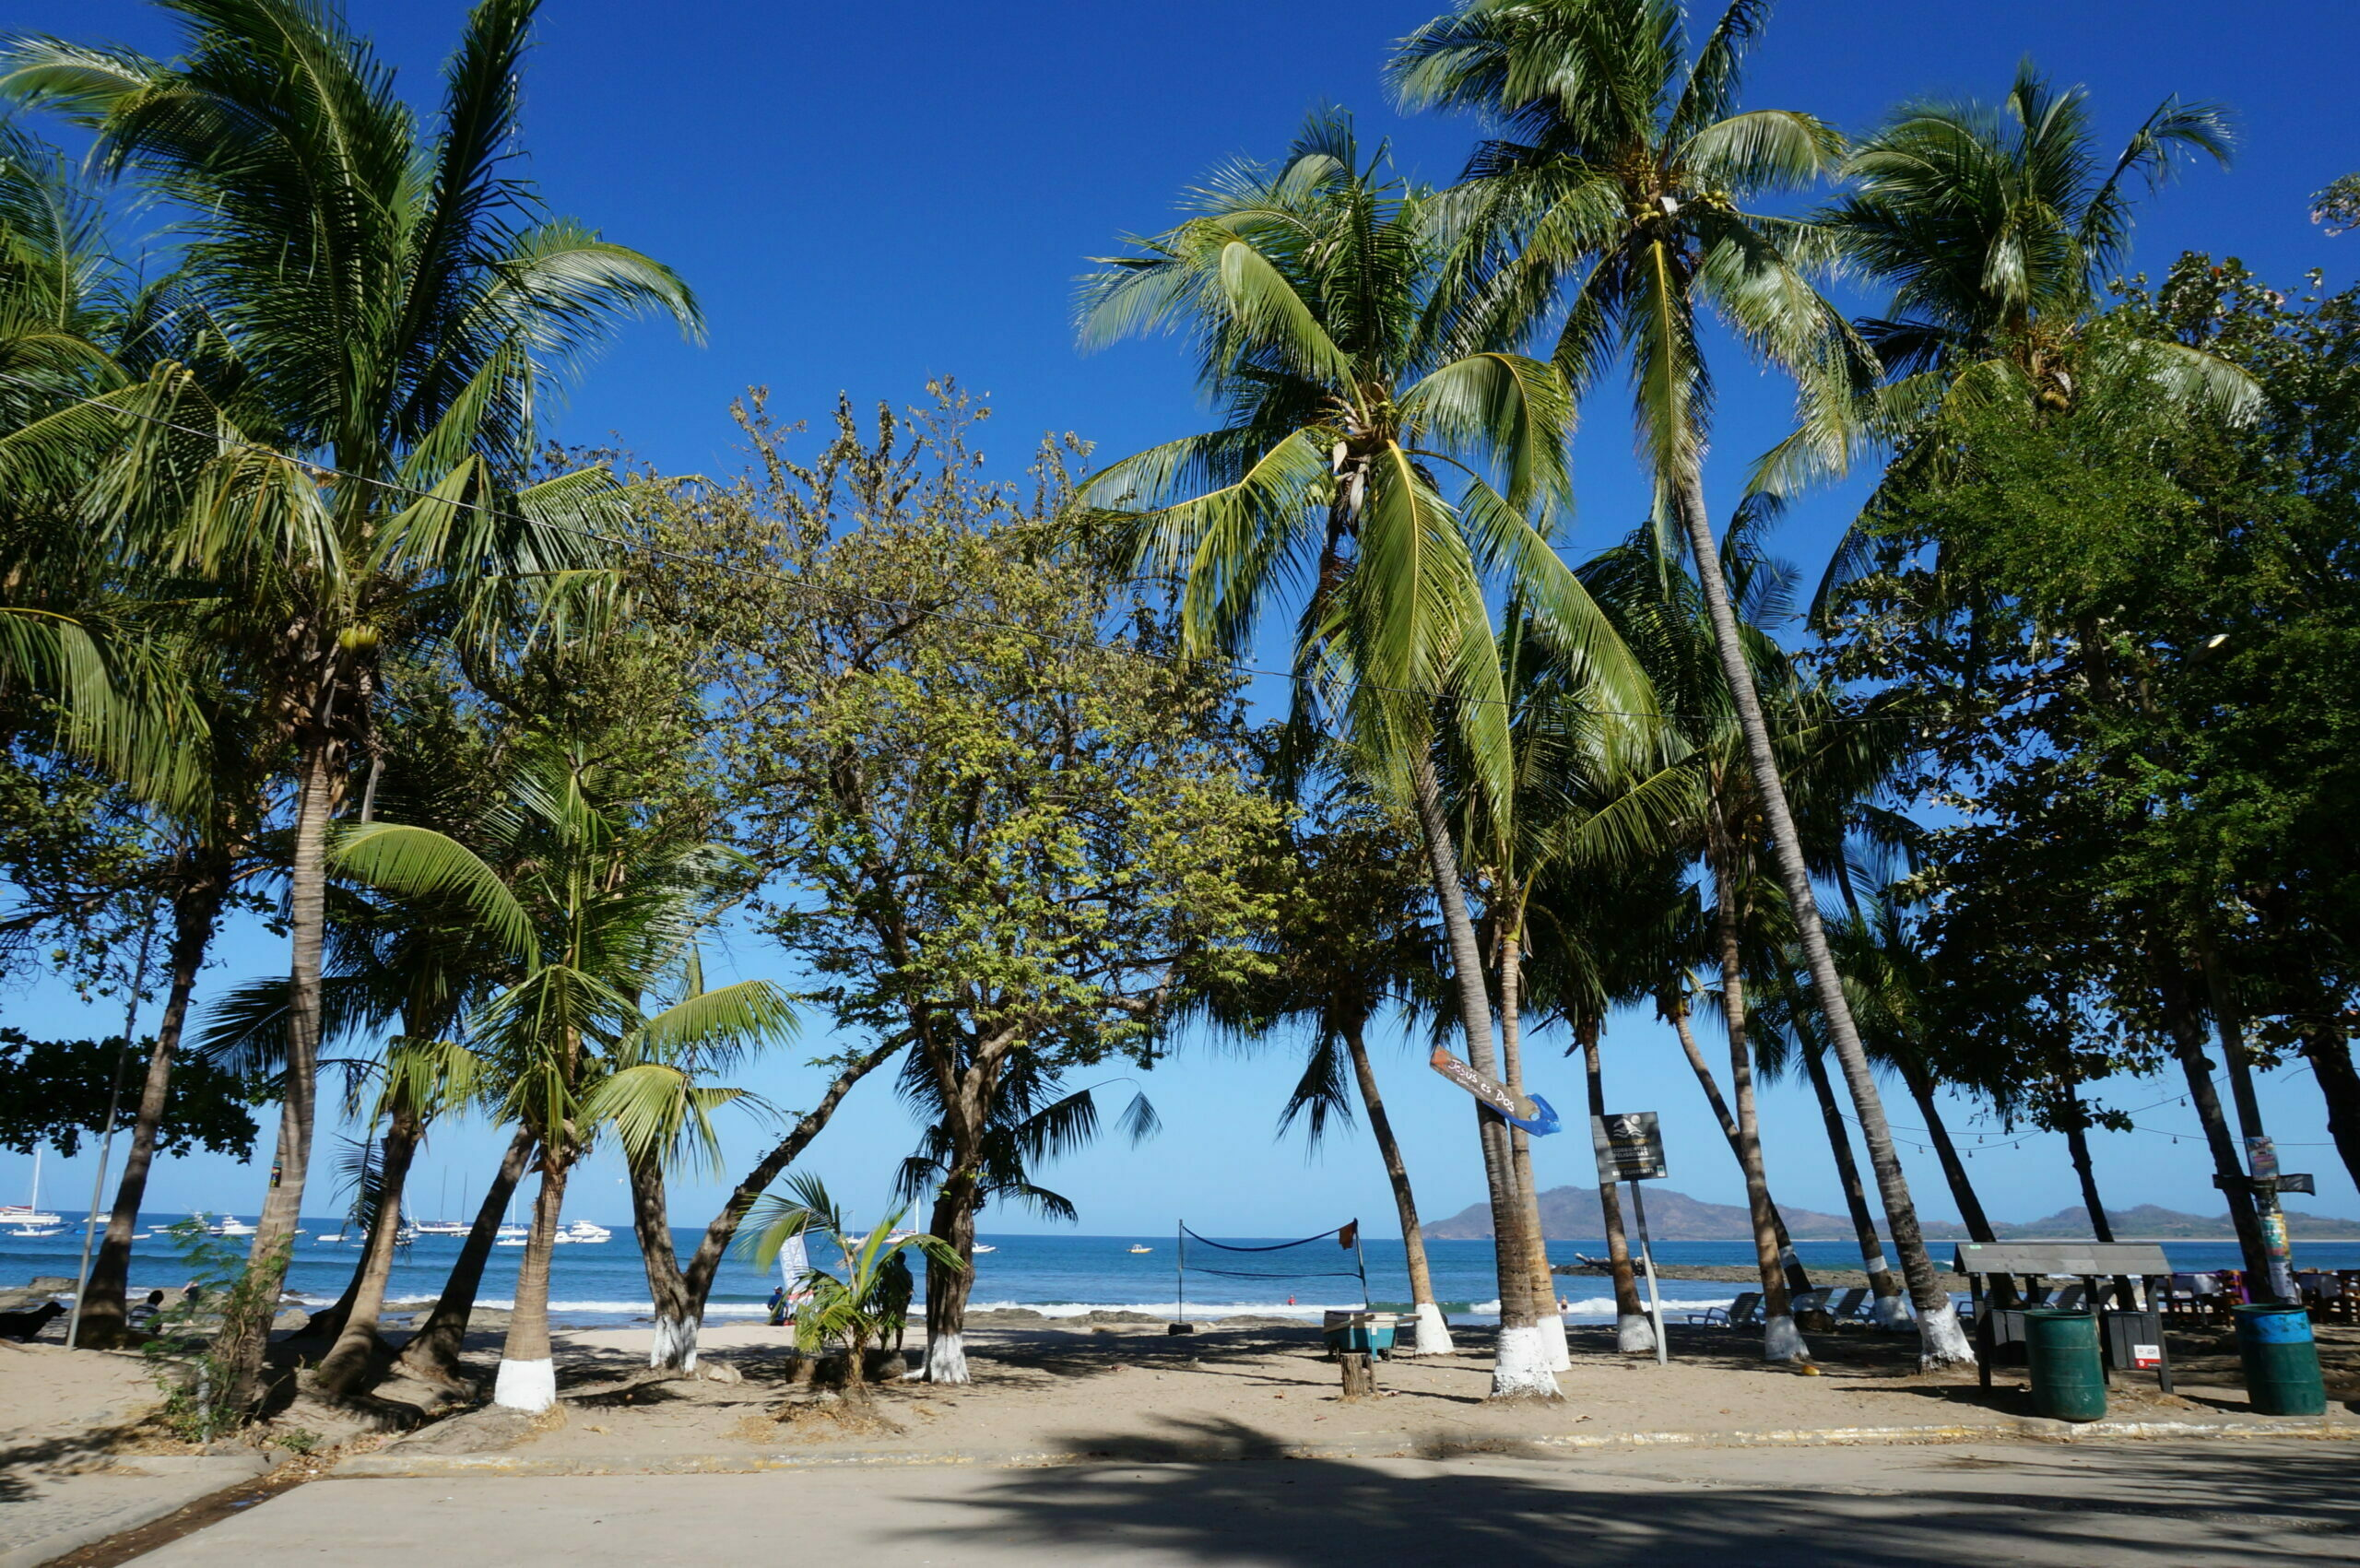 Exploring the beaches of Guanacaste's Gold Coast